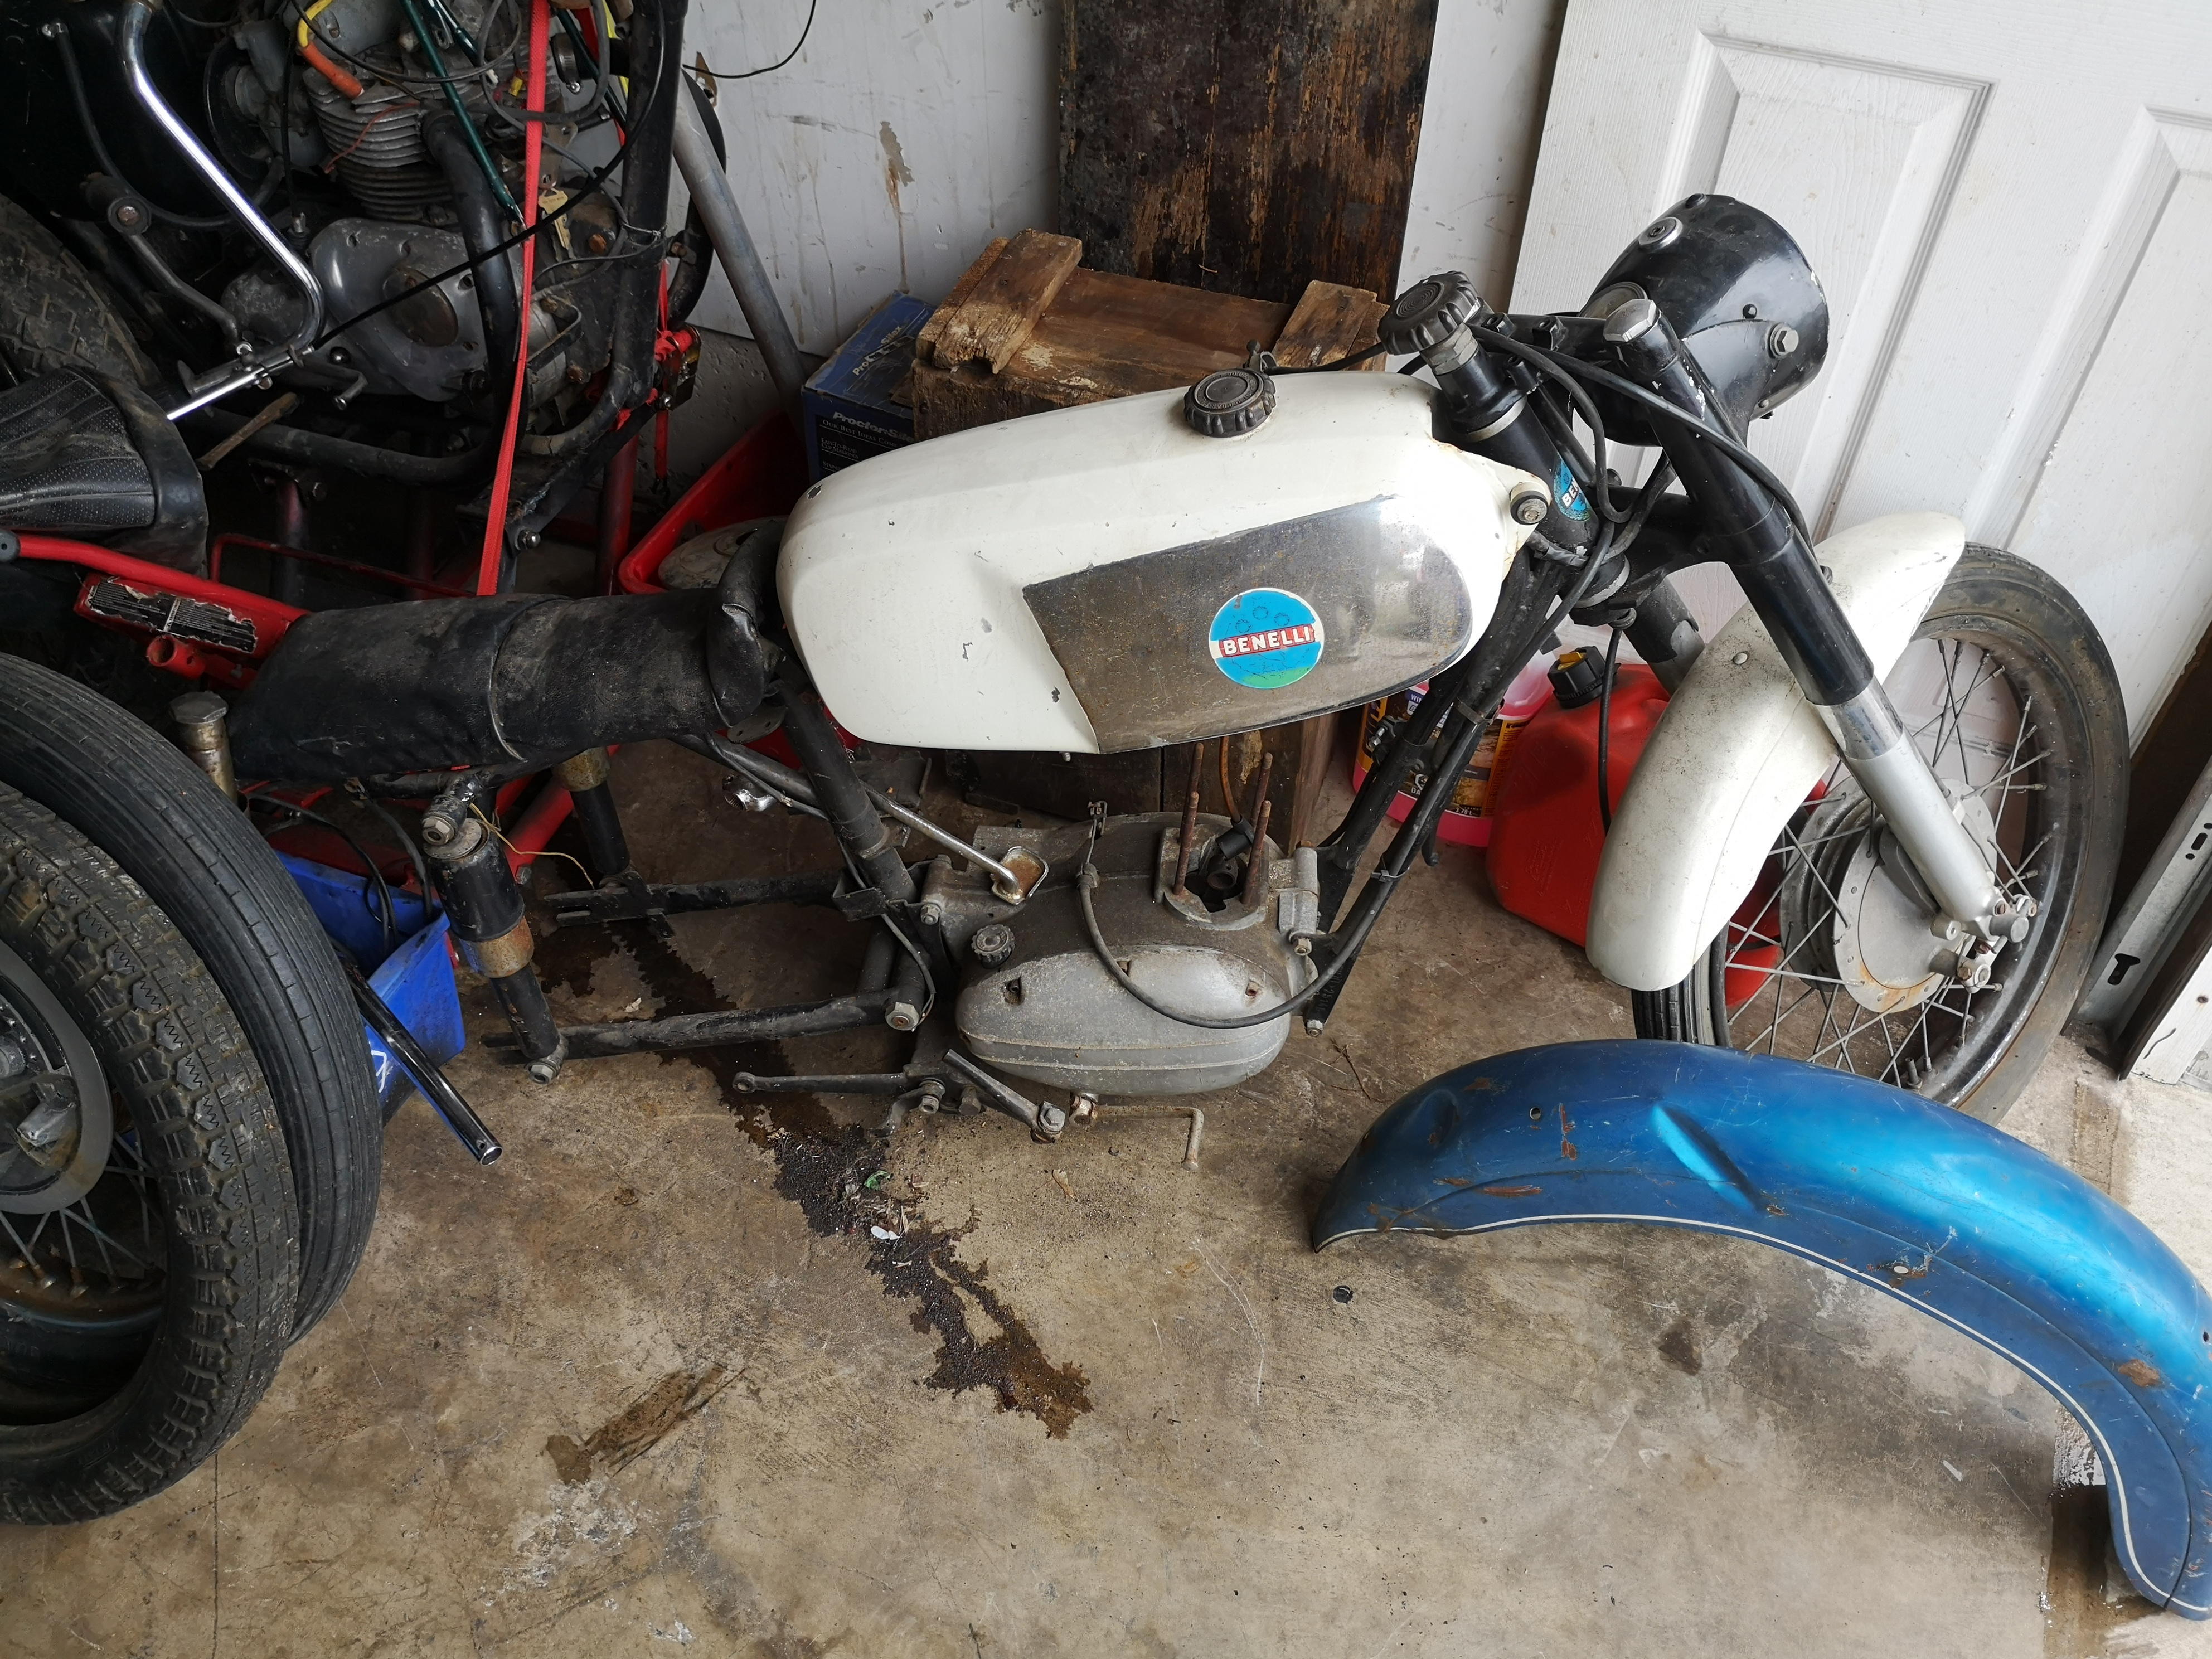 What year and model is this Benelli?-img_20190501_155844_1556880010481.jpg